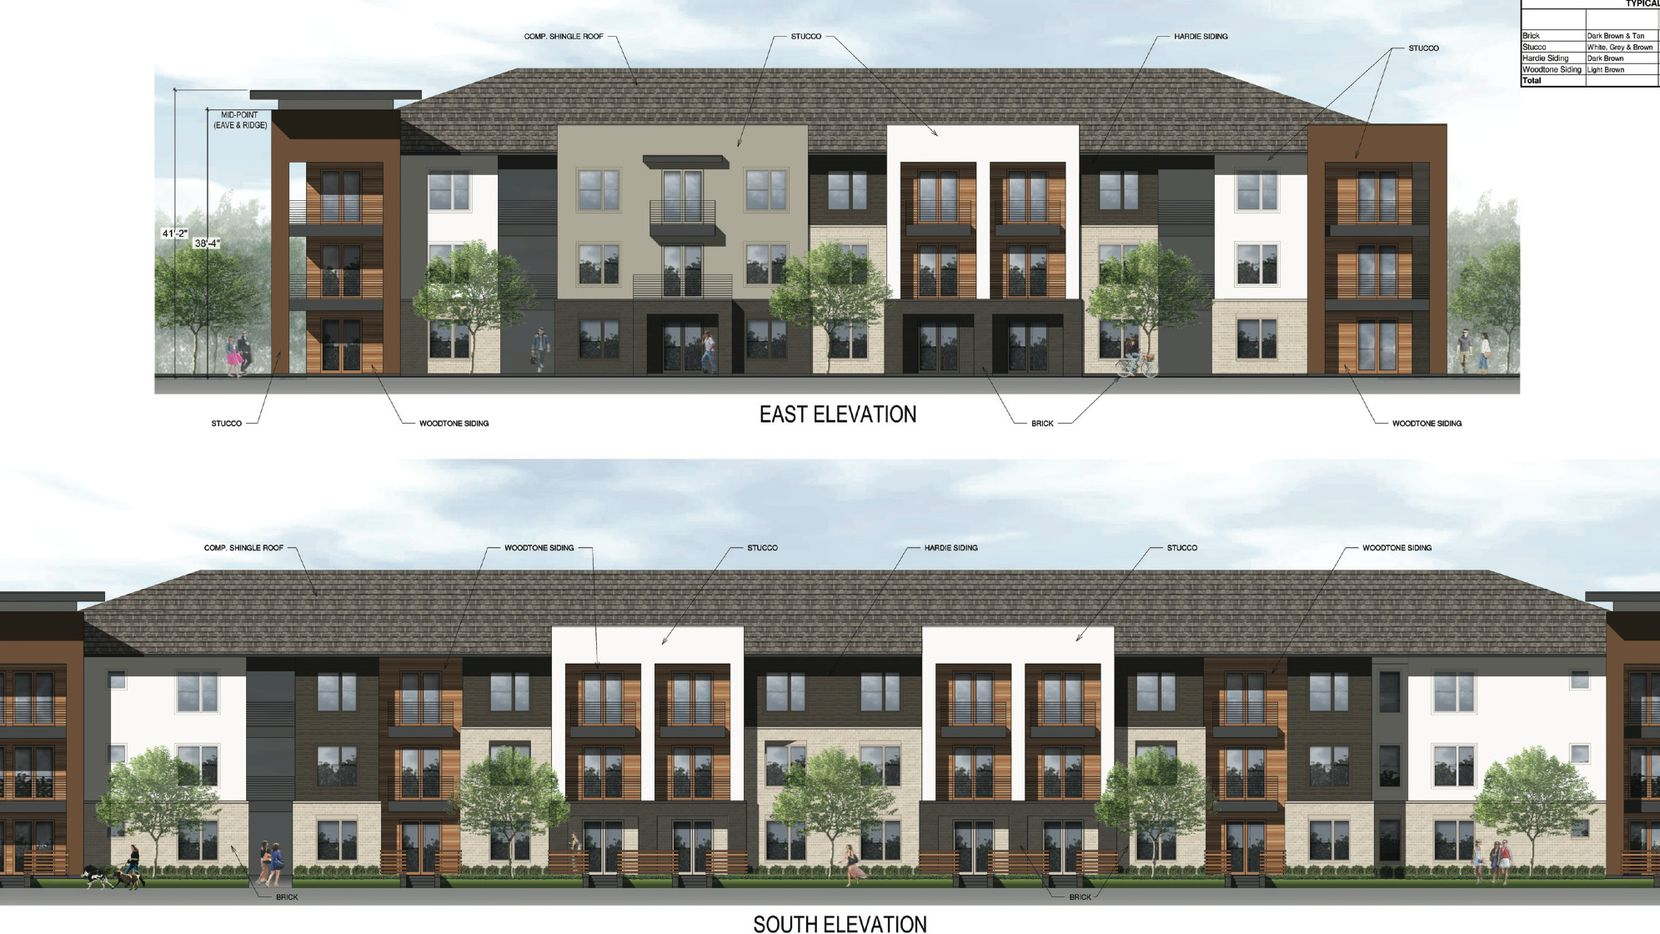 More than 400 apartments are planned in the Hall Park at Richardson project. (Architecture Demarest)